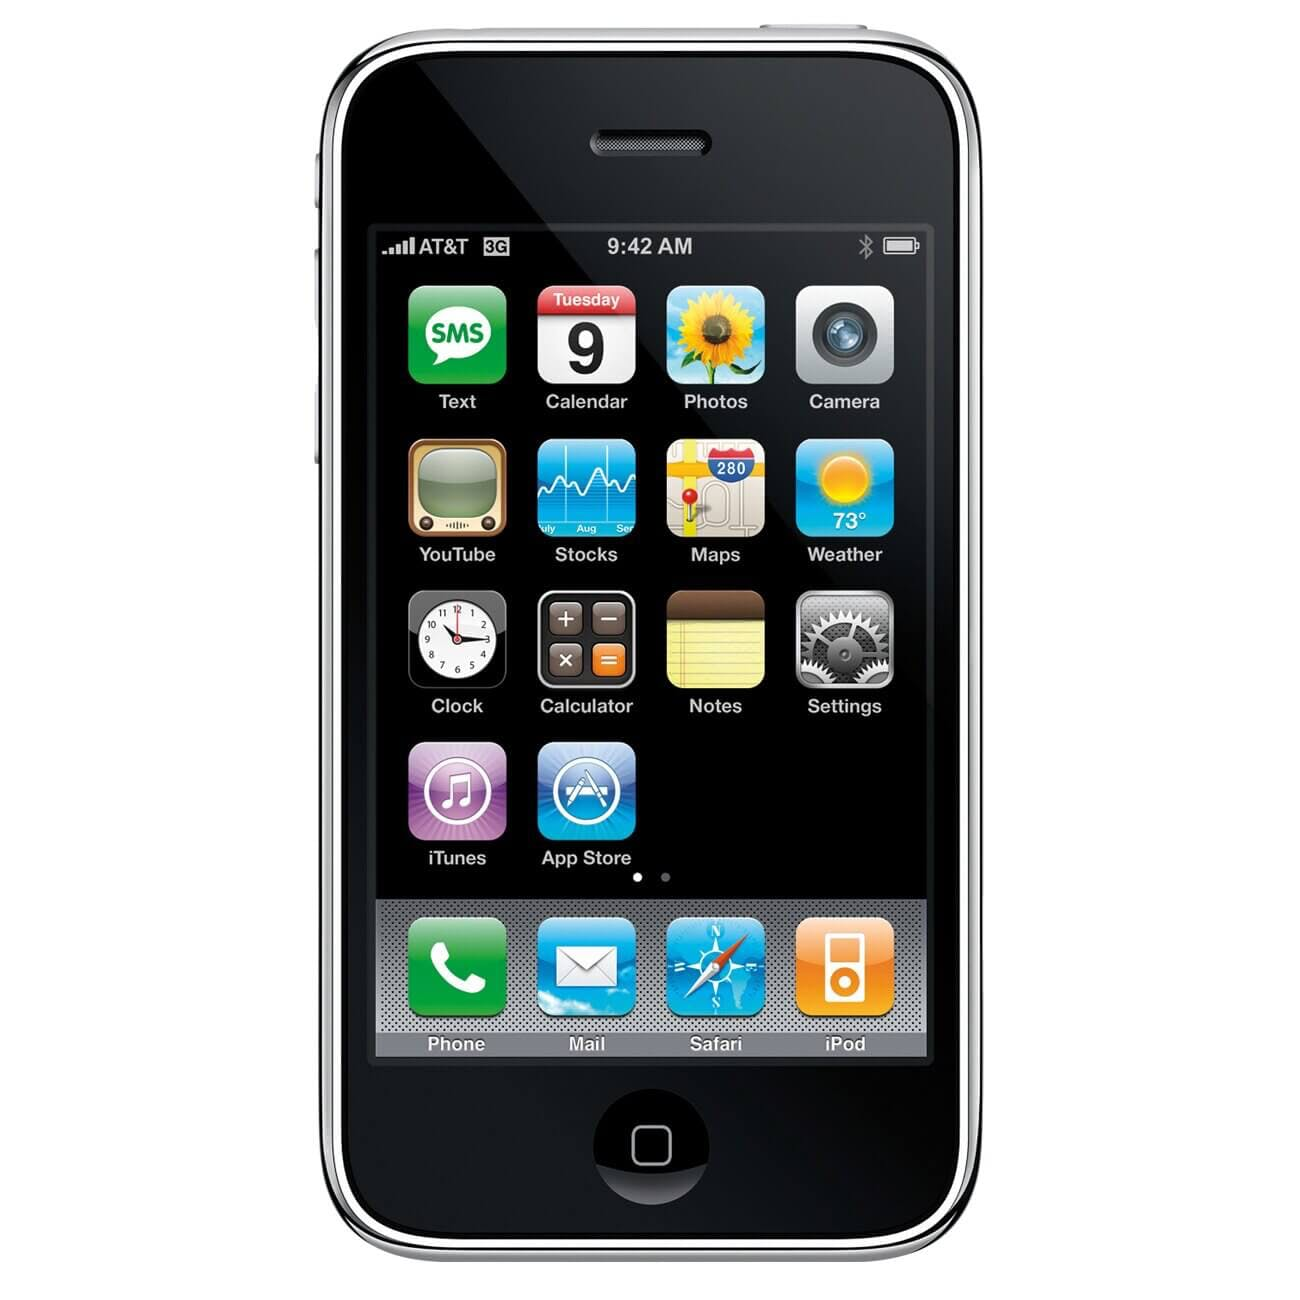 The iPhone 3GS is a reminder of the less sophisticated smartphone technology that we used a decade ago